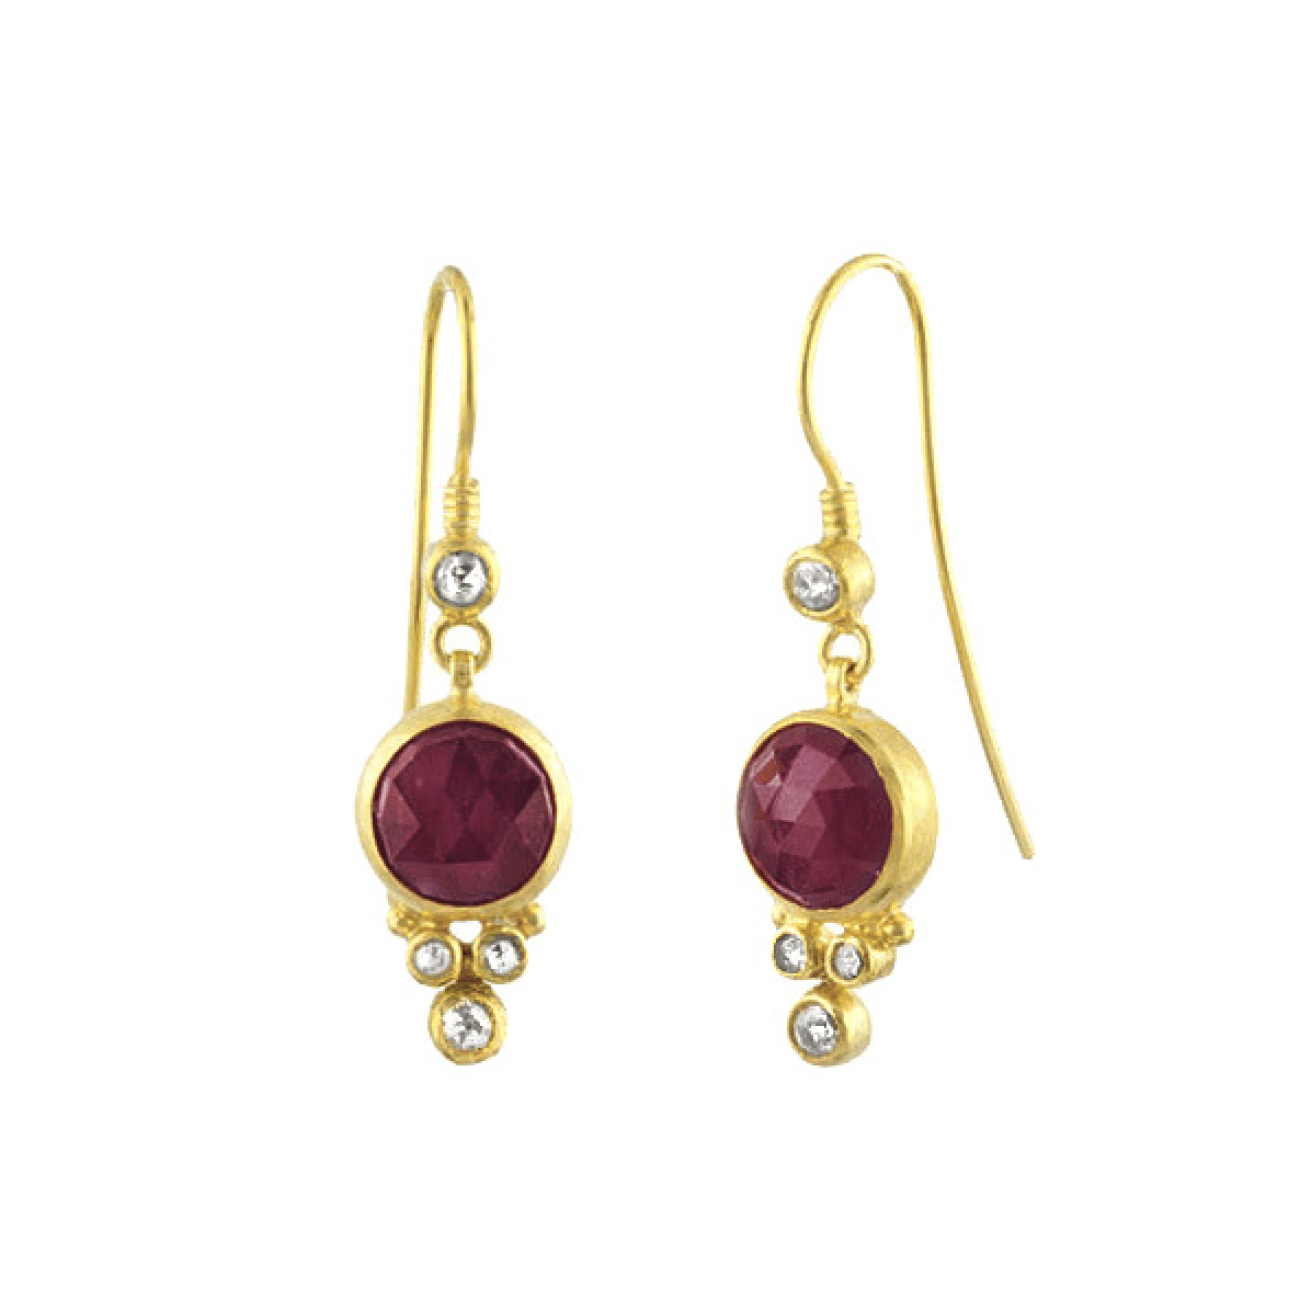 Gurhan Jewelry - 9mm round cut rubies with 3 rose cut diamond earrings | Manfredi Jewels